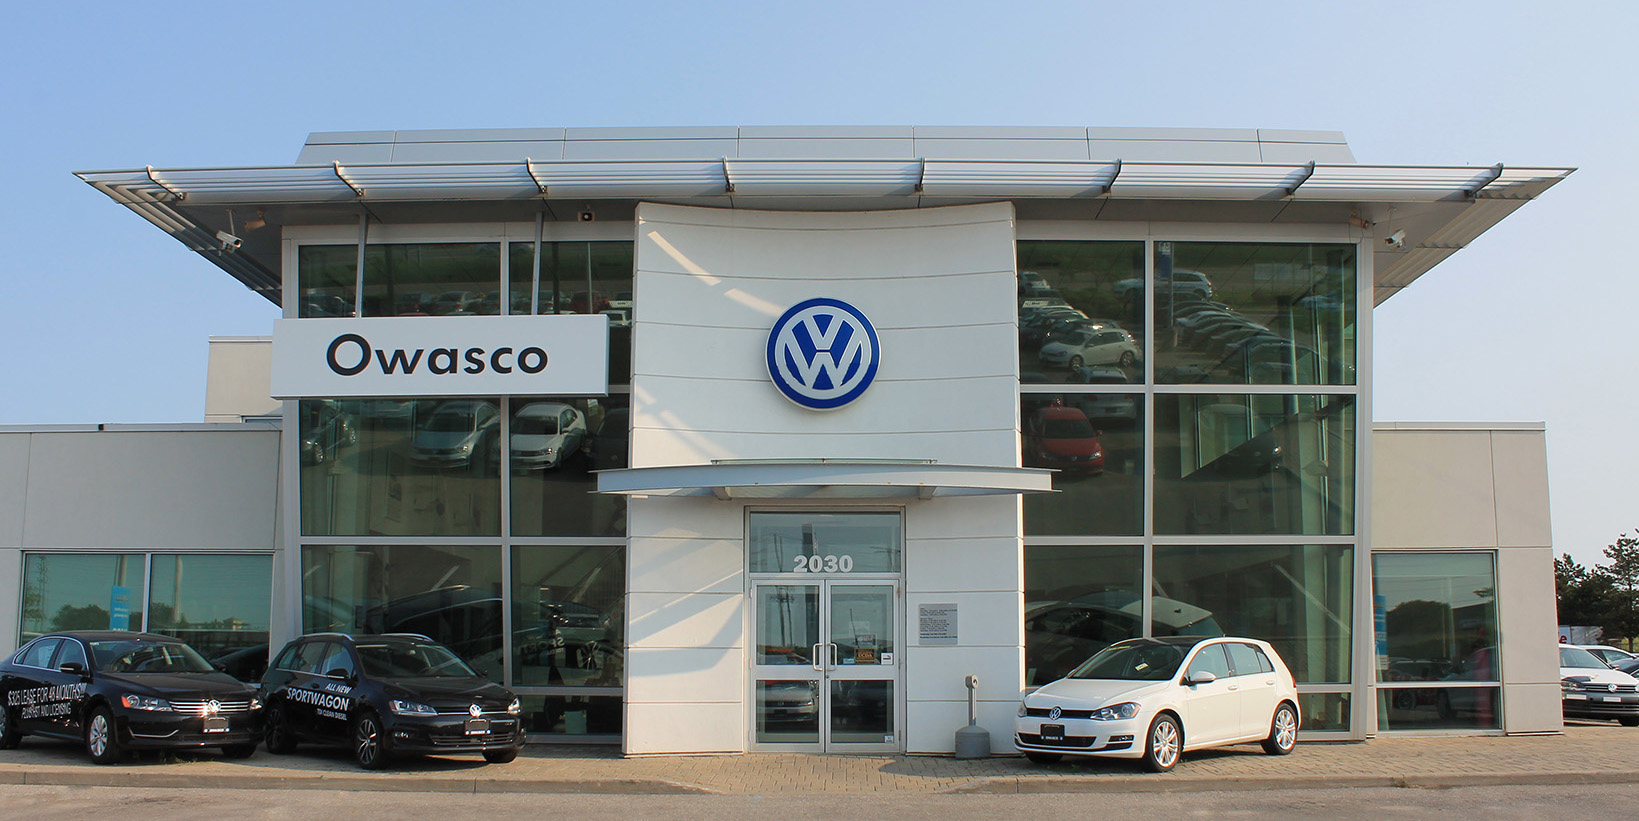 Owasco VW Building Shot